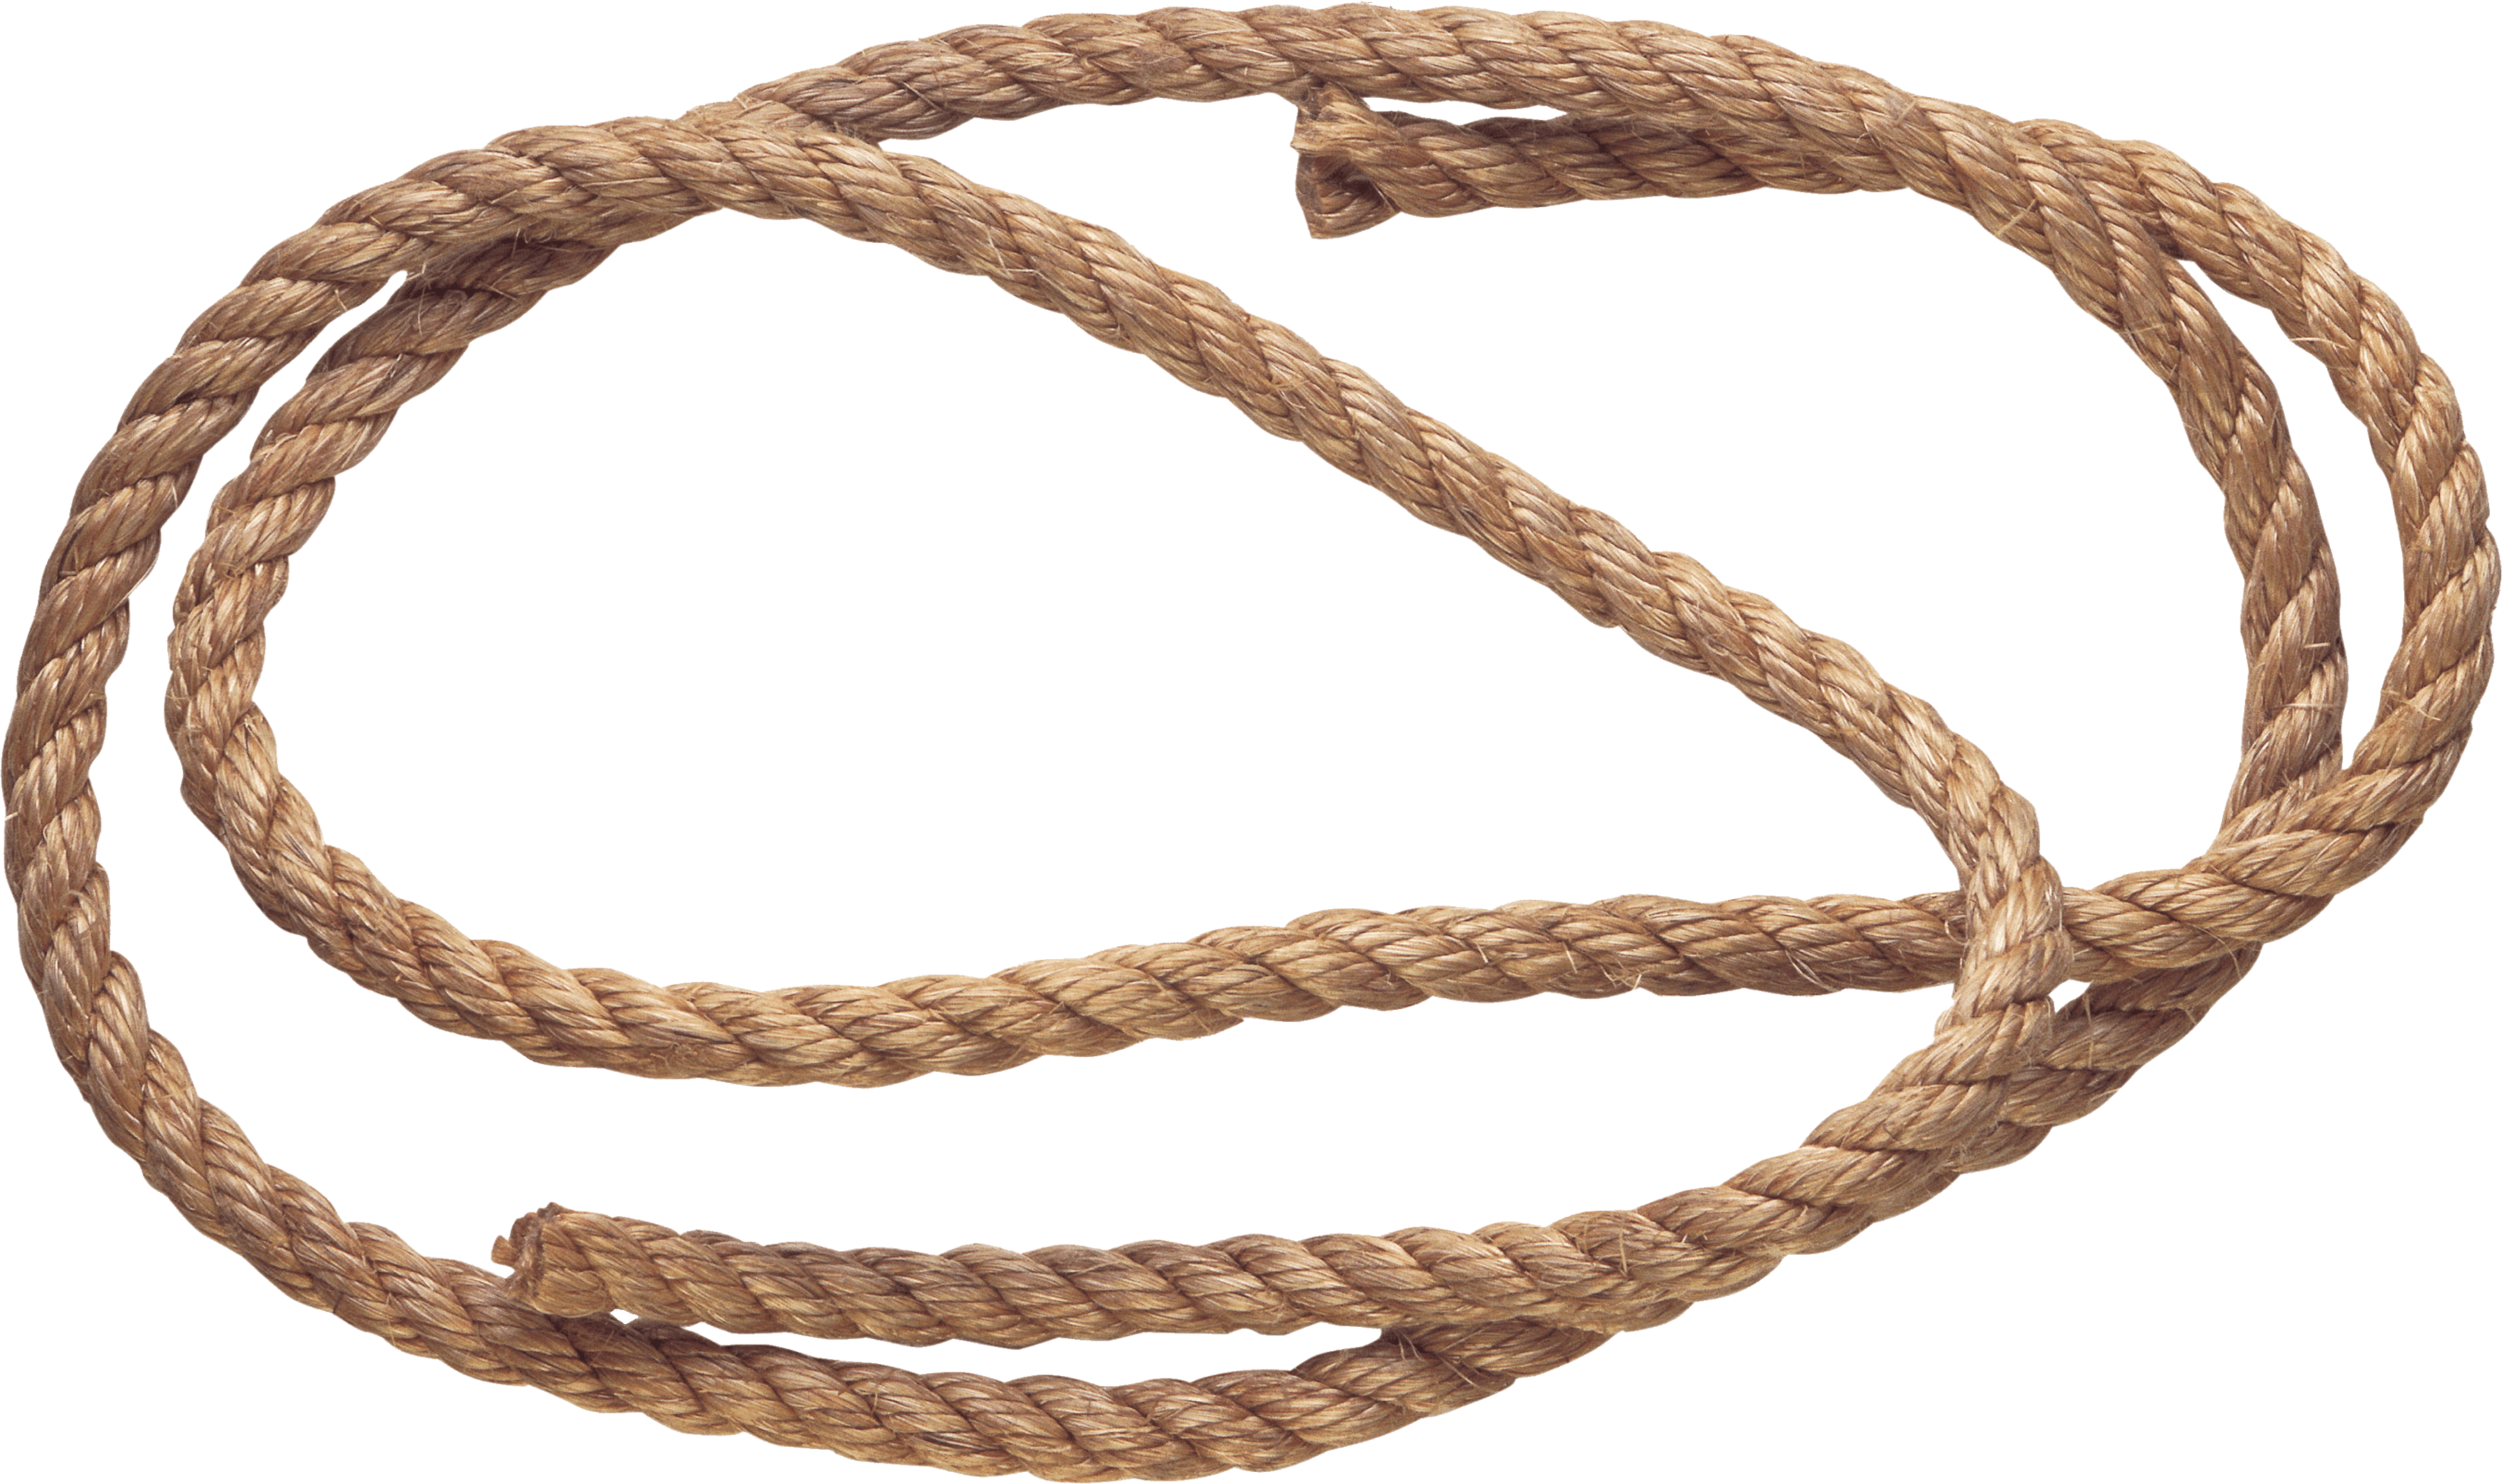 objects · rope - Rope HD PNG